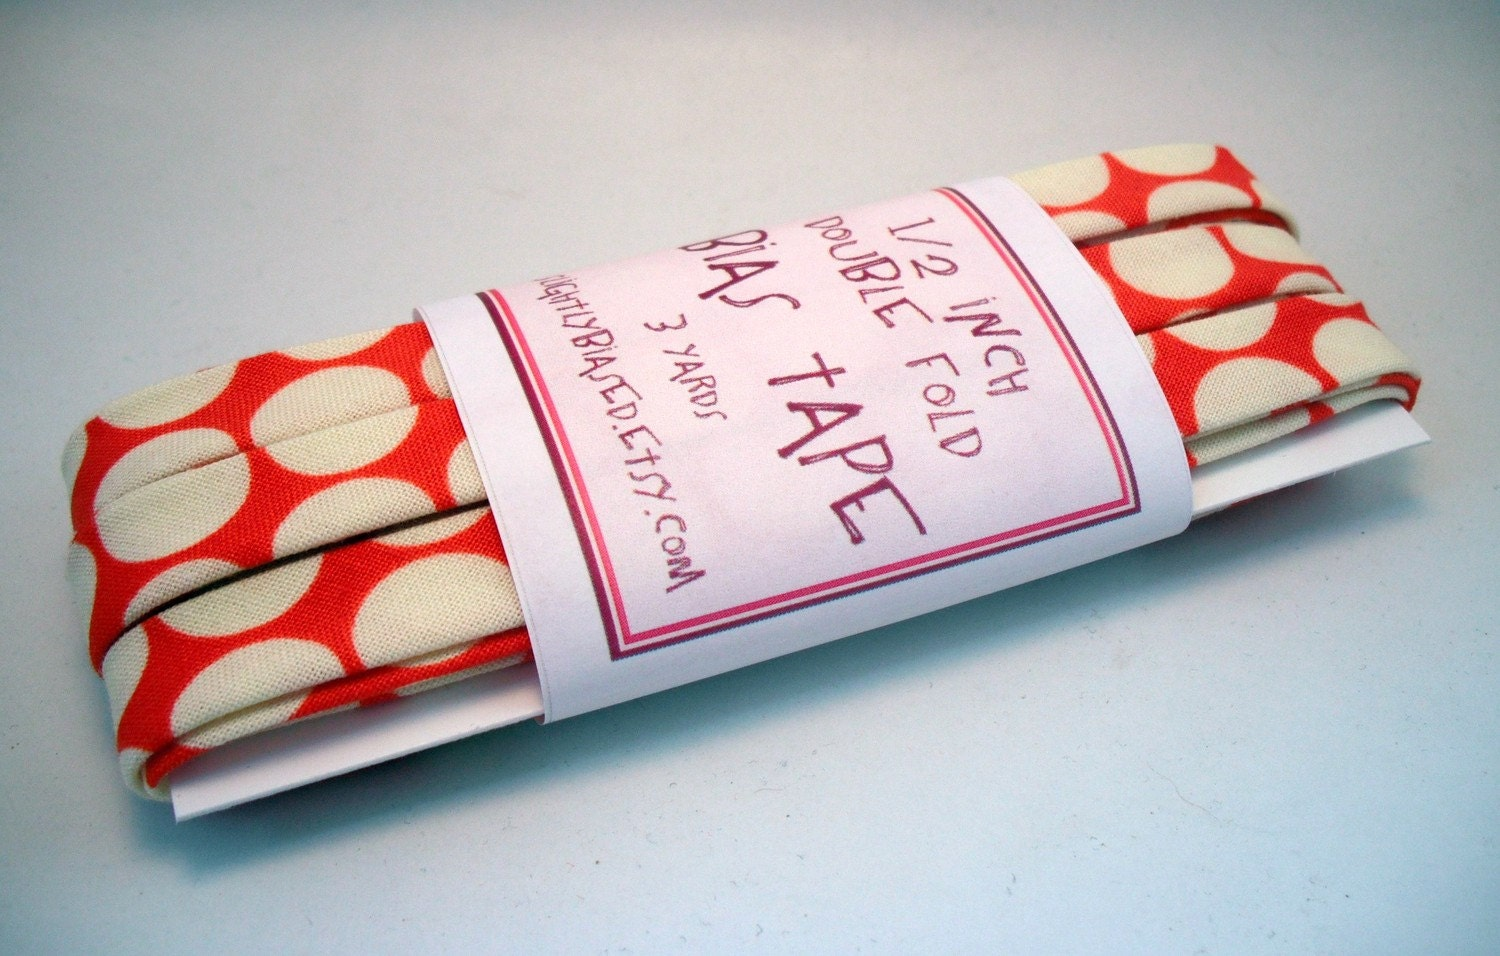 Bias Tape - Full Moon Polka Dot in Cherry Handmade Double Fold Bias Tape, 3 Yards